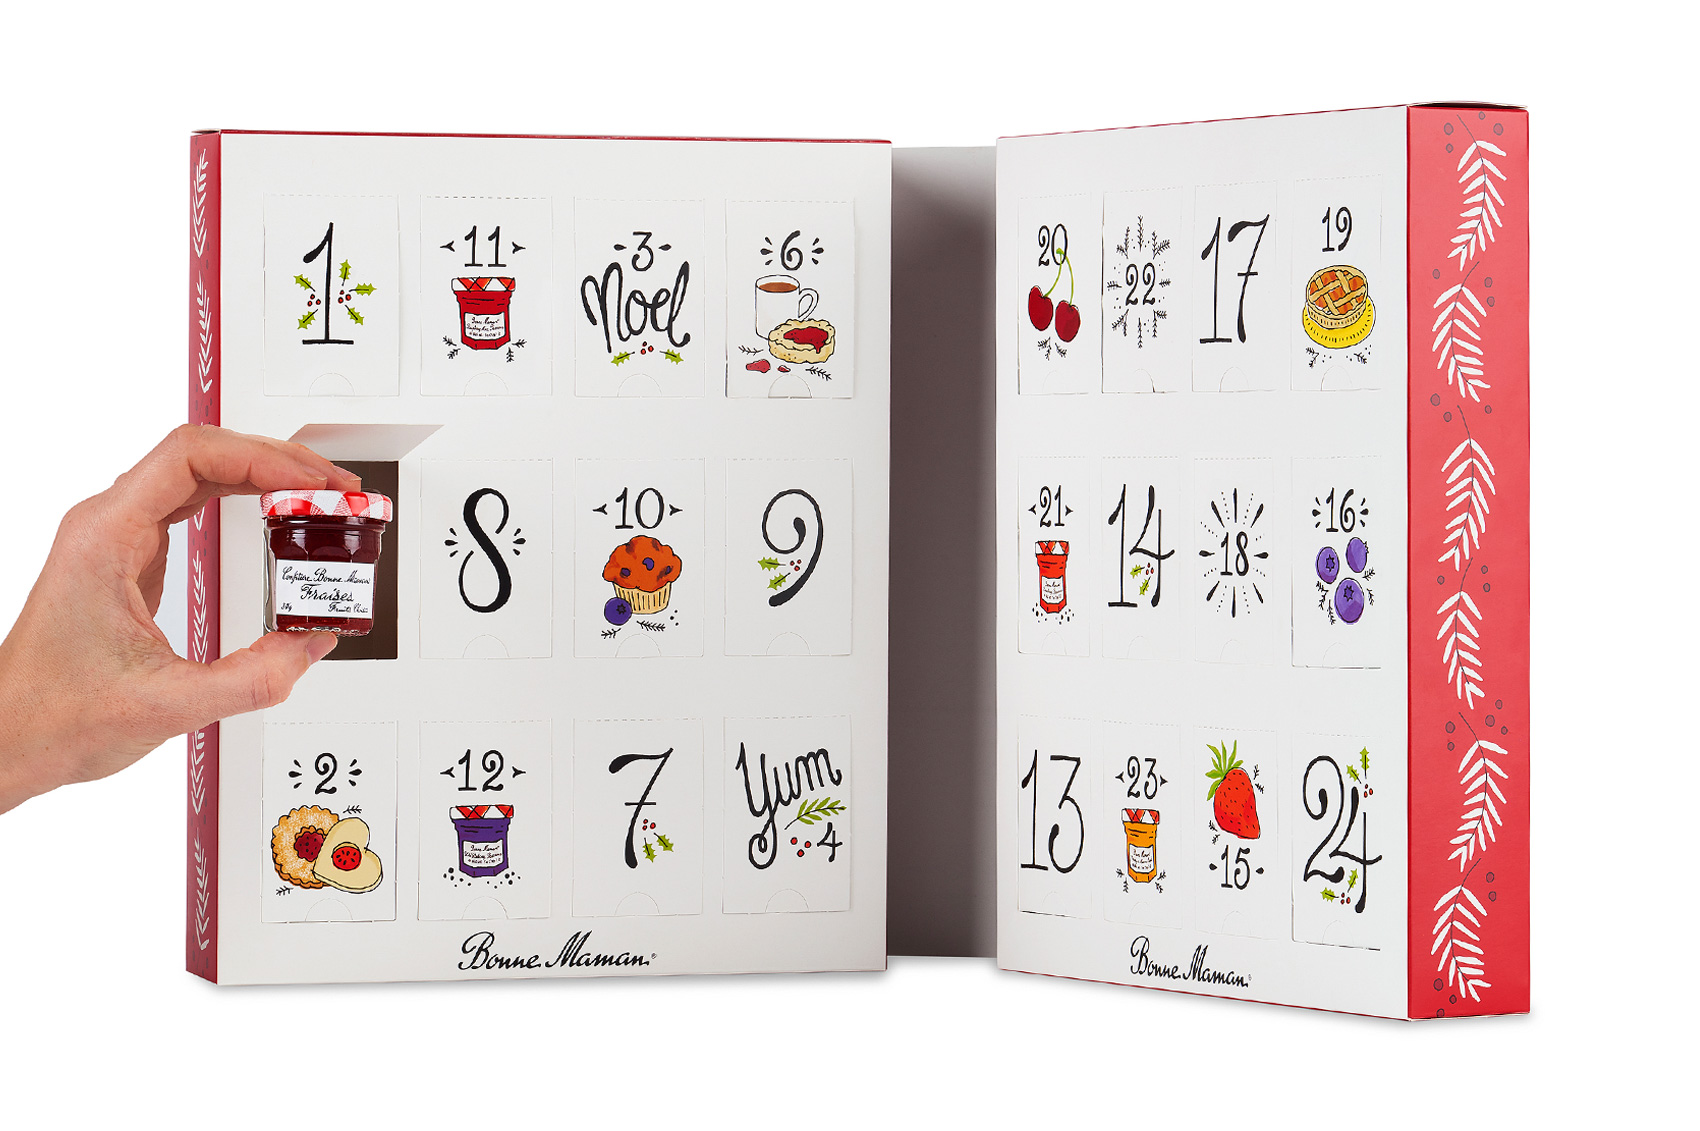 Inside of box for Bonne Maman advent calendar with custom illustration and french-inspired hand lettered numerals, full of holiday cheer - sprigs of holly, bursts and sweet treats.